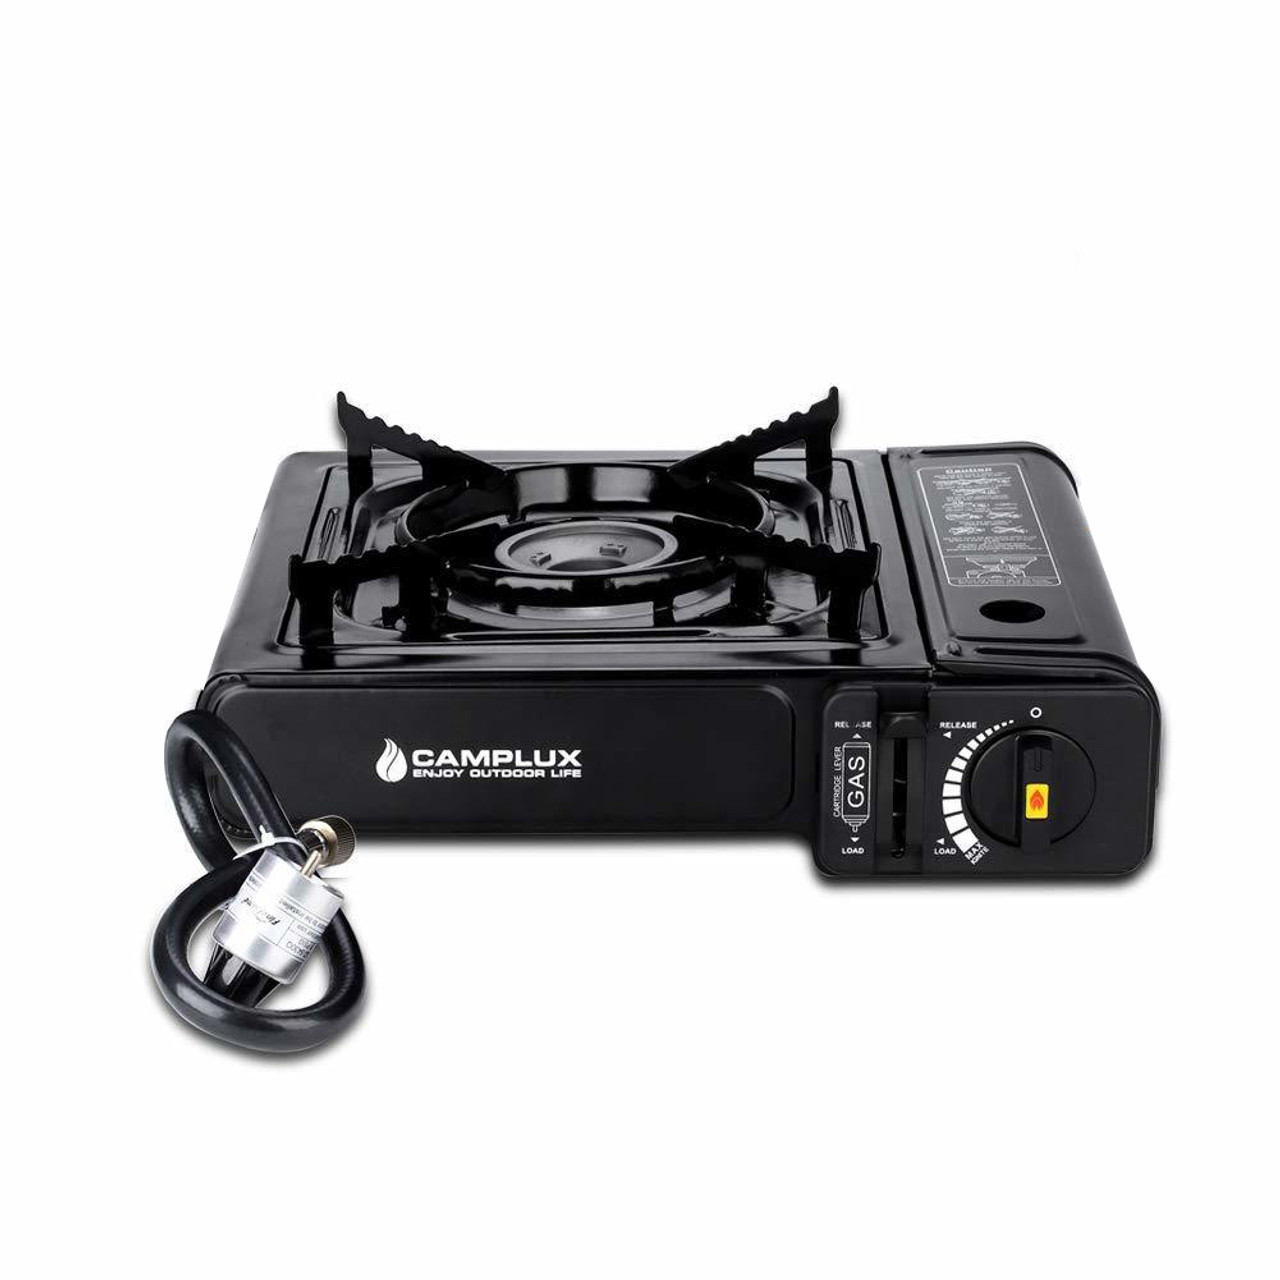 Camplux Portable Camping Twin Burner Gas Stove